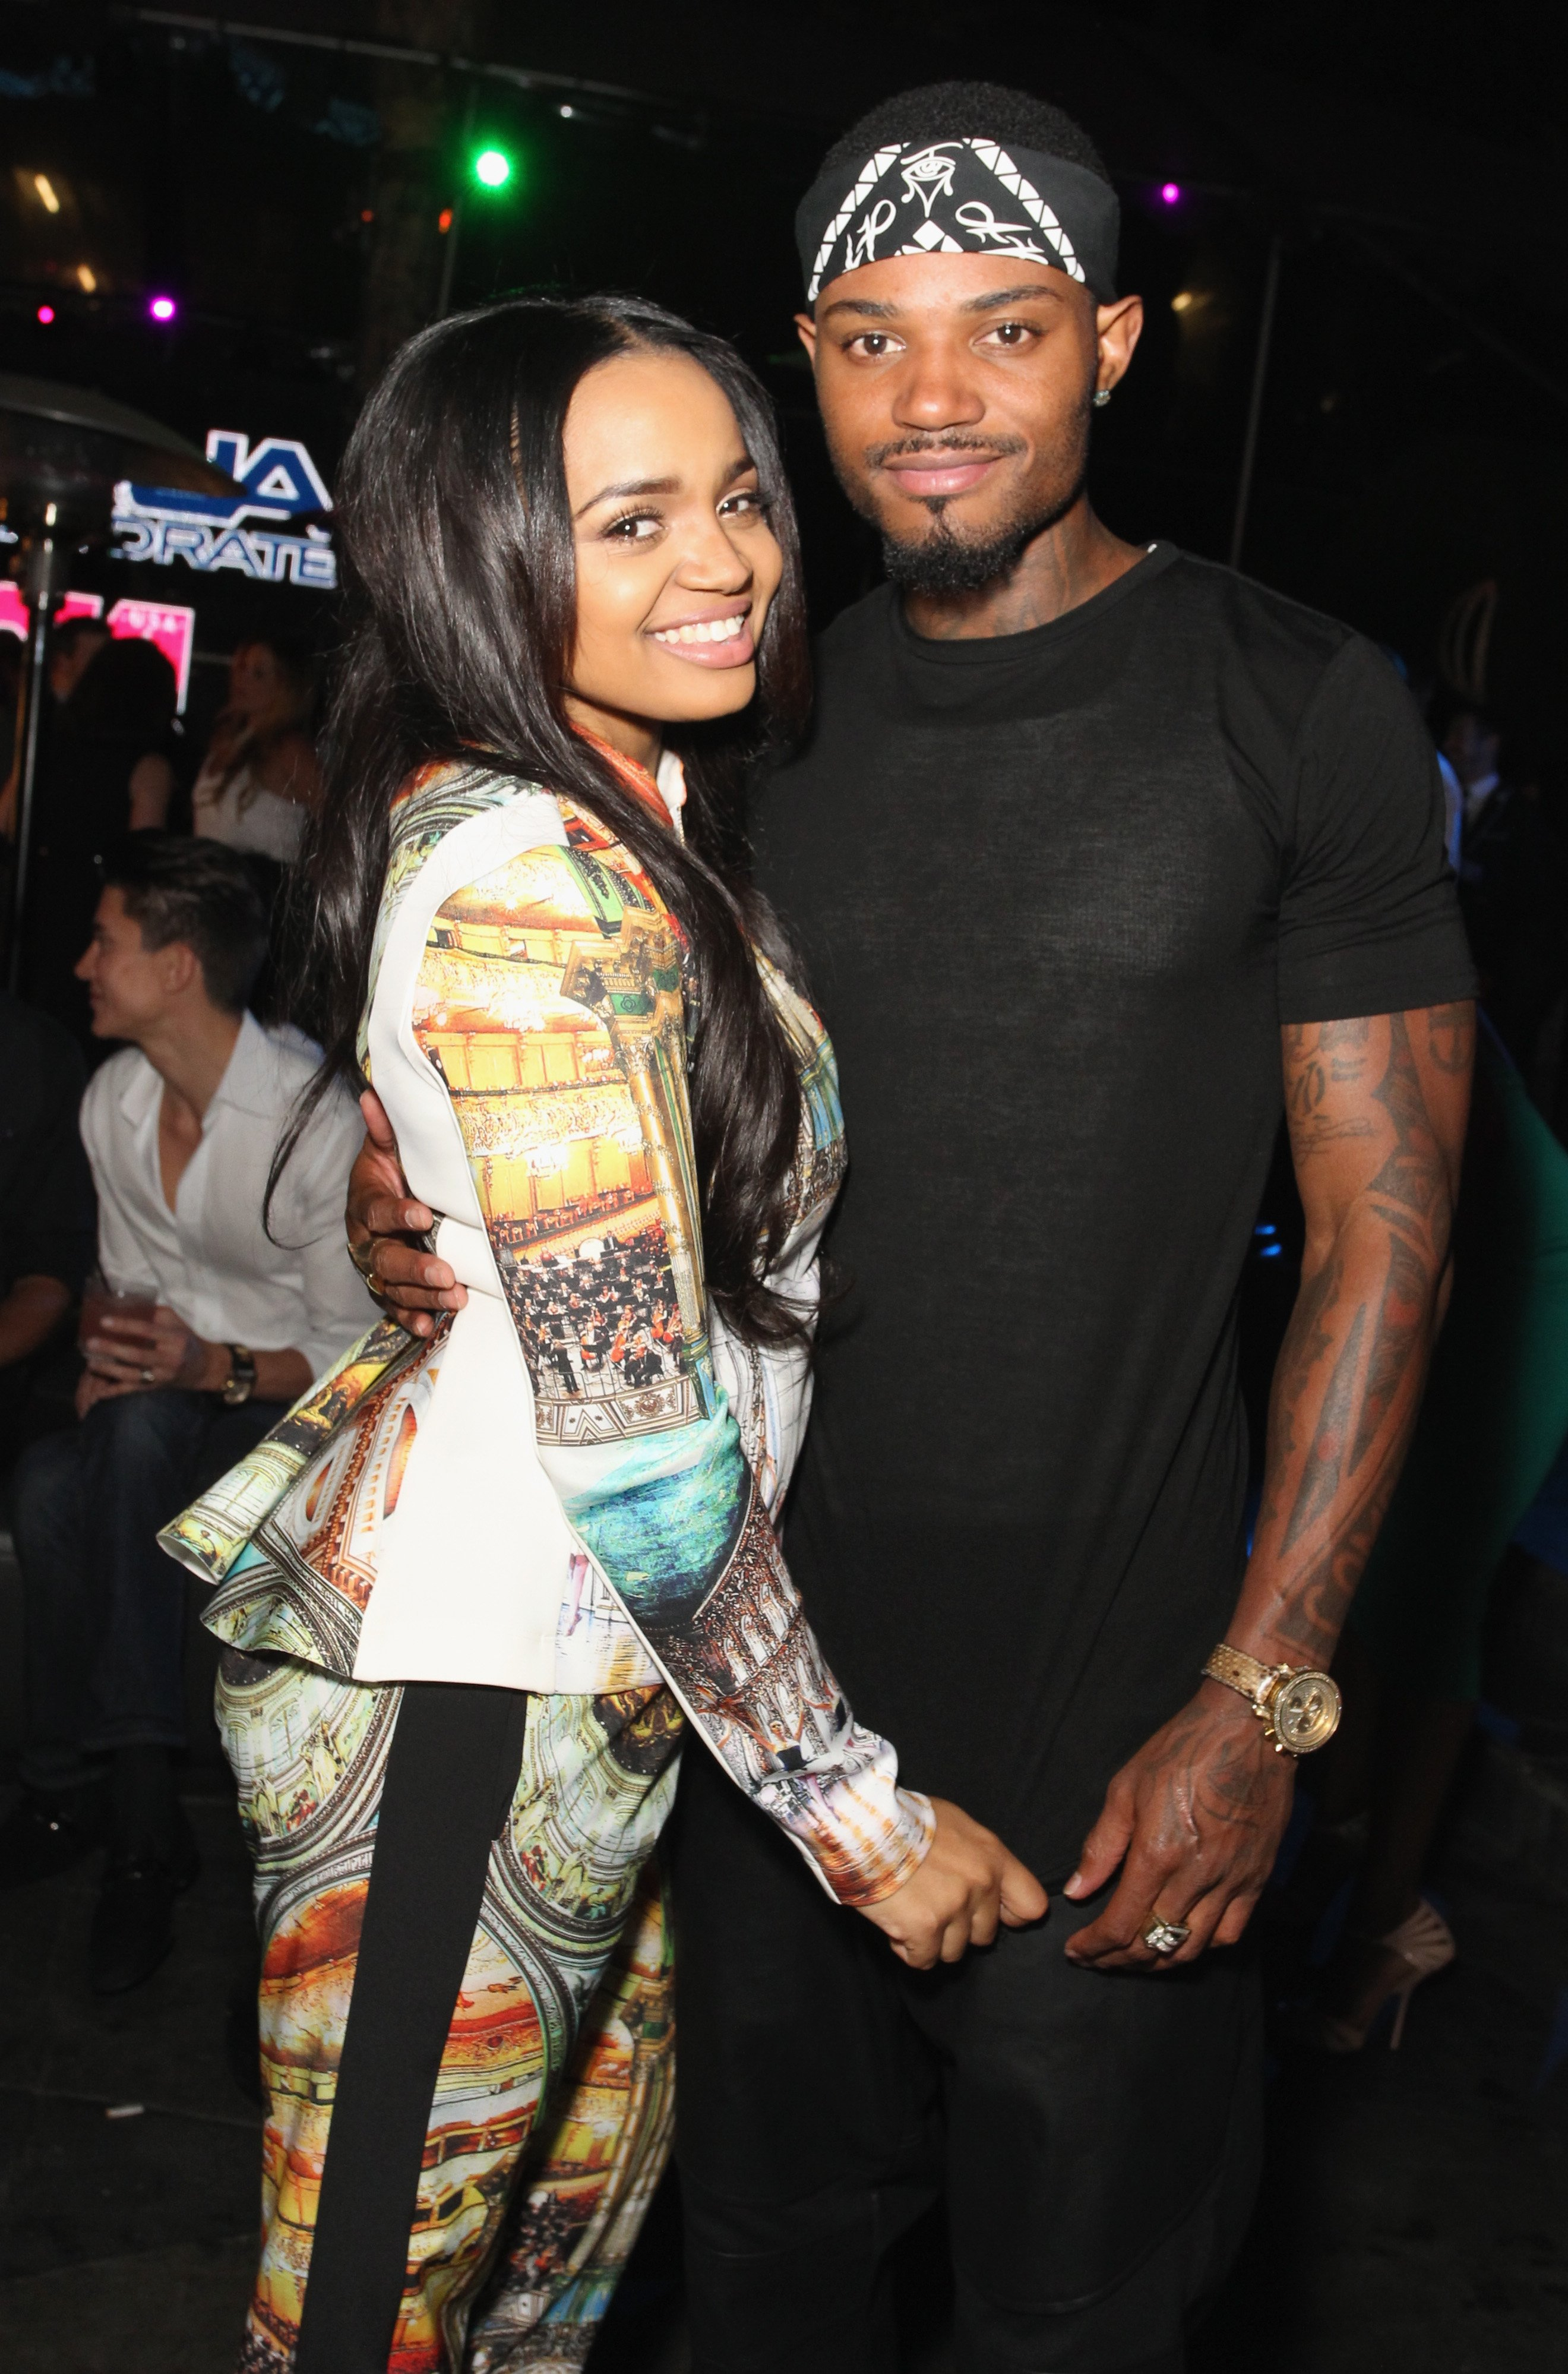 Kyla Pratt and Danny Kilpatrick attend the So Sexy L.A. Event in Los Angeles on May 21, 2014 | Photo: Getty Images